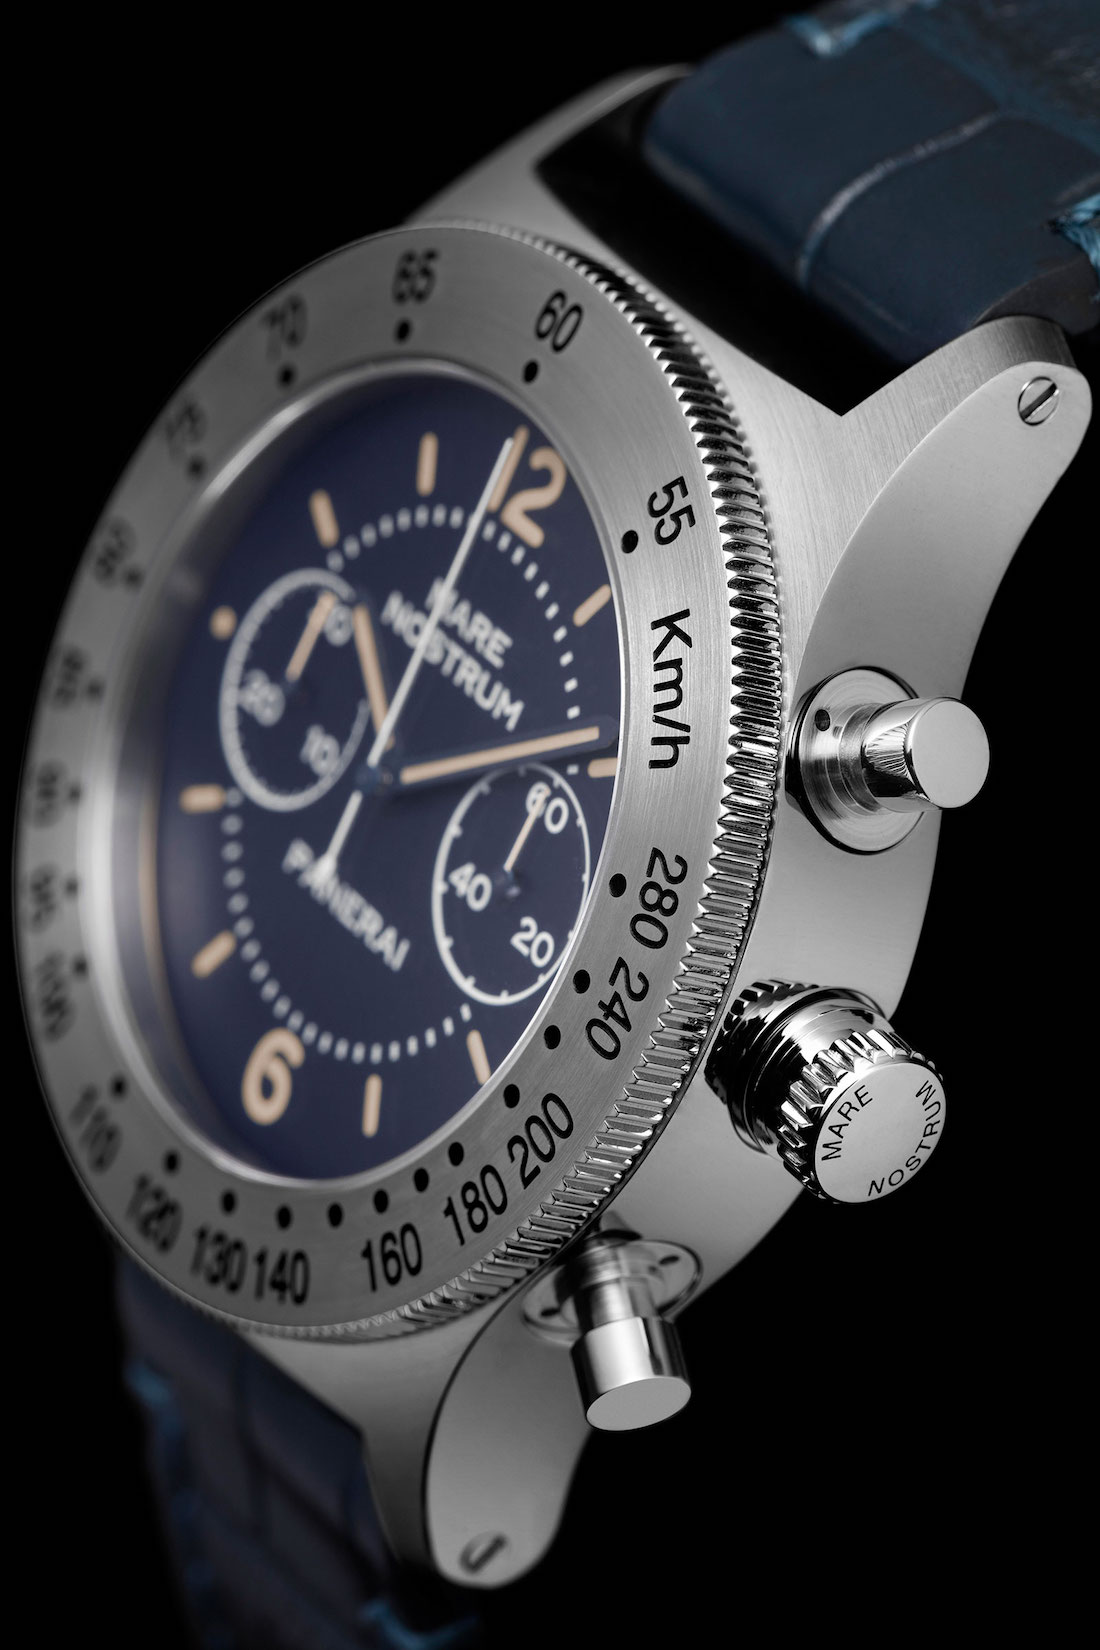 Take A Look At The Panerai Mare Nostrum Chronograph PAM716 Replica